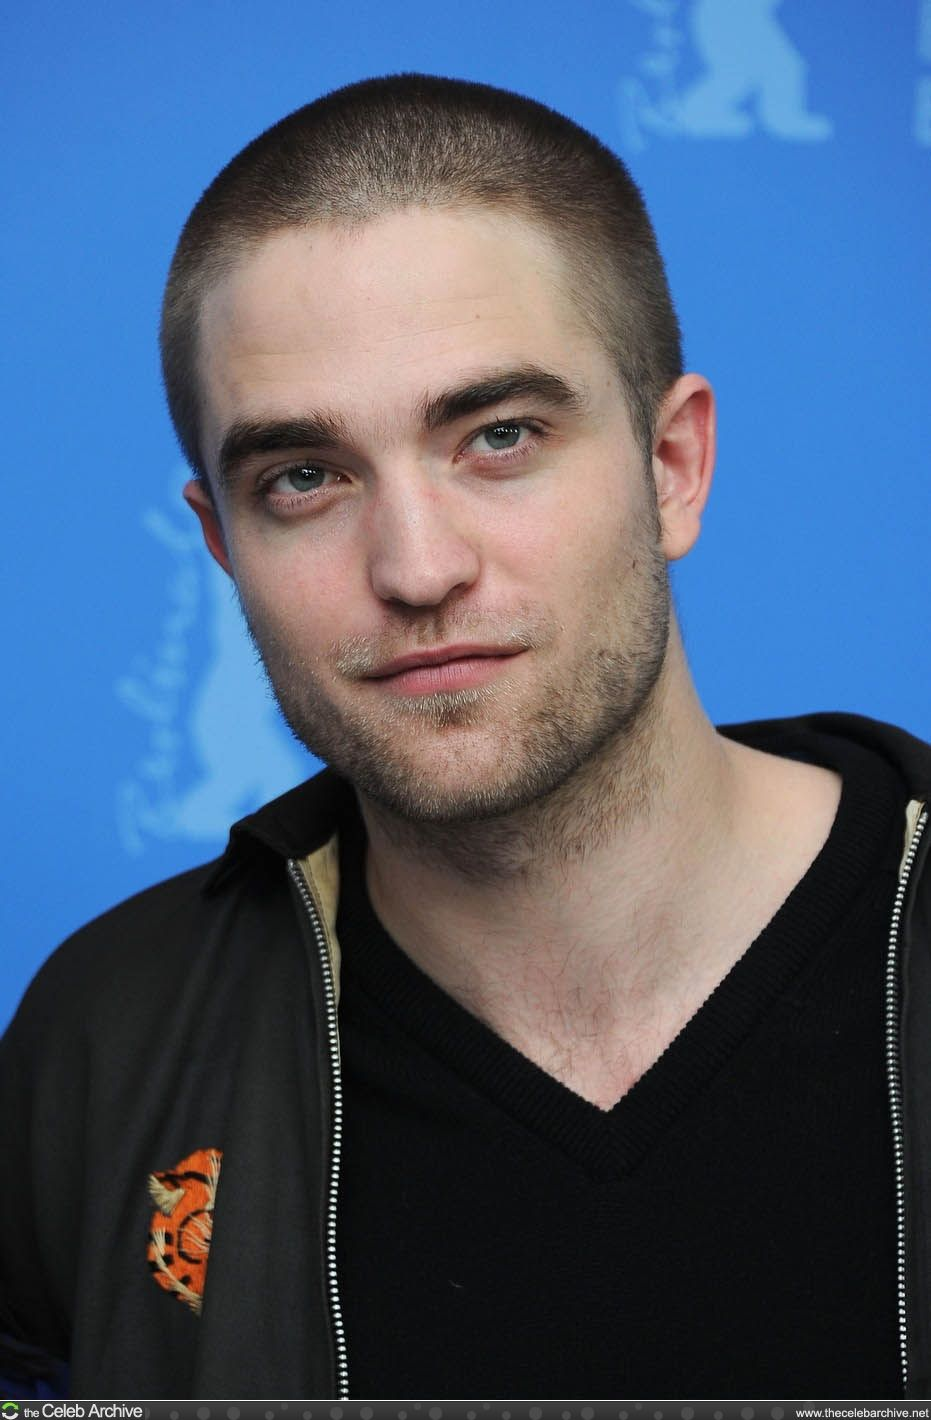 """Robert Pattinson says he couldn't do Taylor Lautner style shirtless acting"""" """"I'd have to make a lifestyle change if I wanted to do shirtless acting."""" The vampire seems to be more reserved than the werewolf collegue who spends a large part of the movies without a top on.    Visit Robert's pictures on http://www.thecelebarchive.net/ca/gallery.asp?folder=%2Frobert+pattinson%2F"""